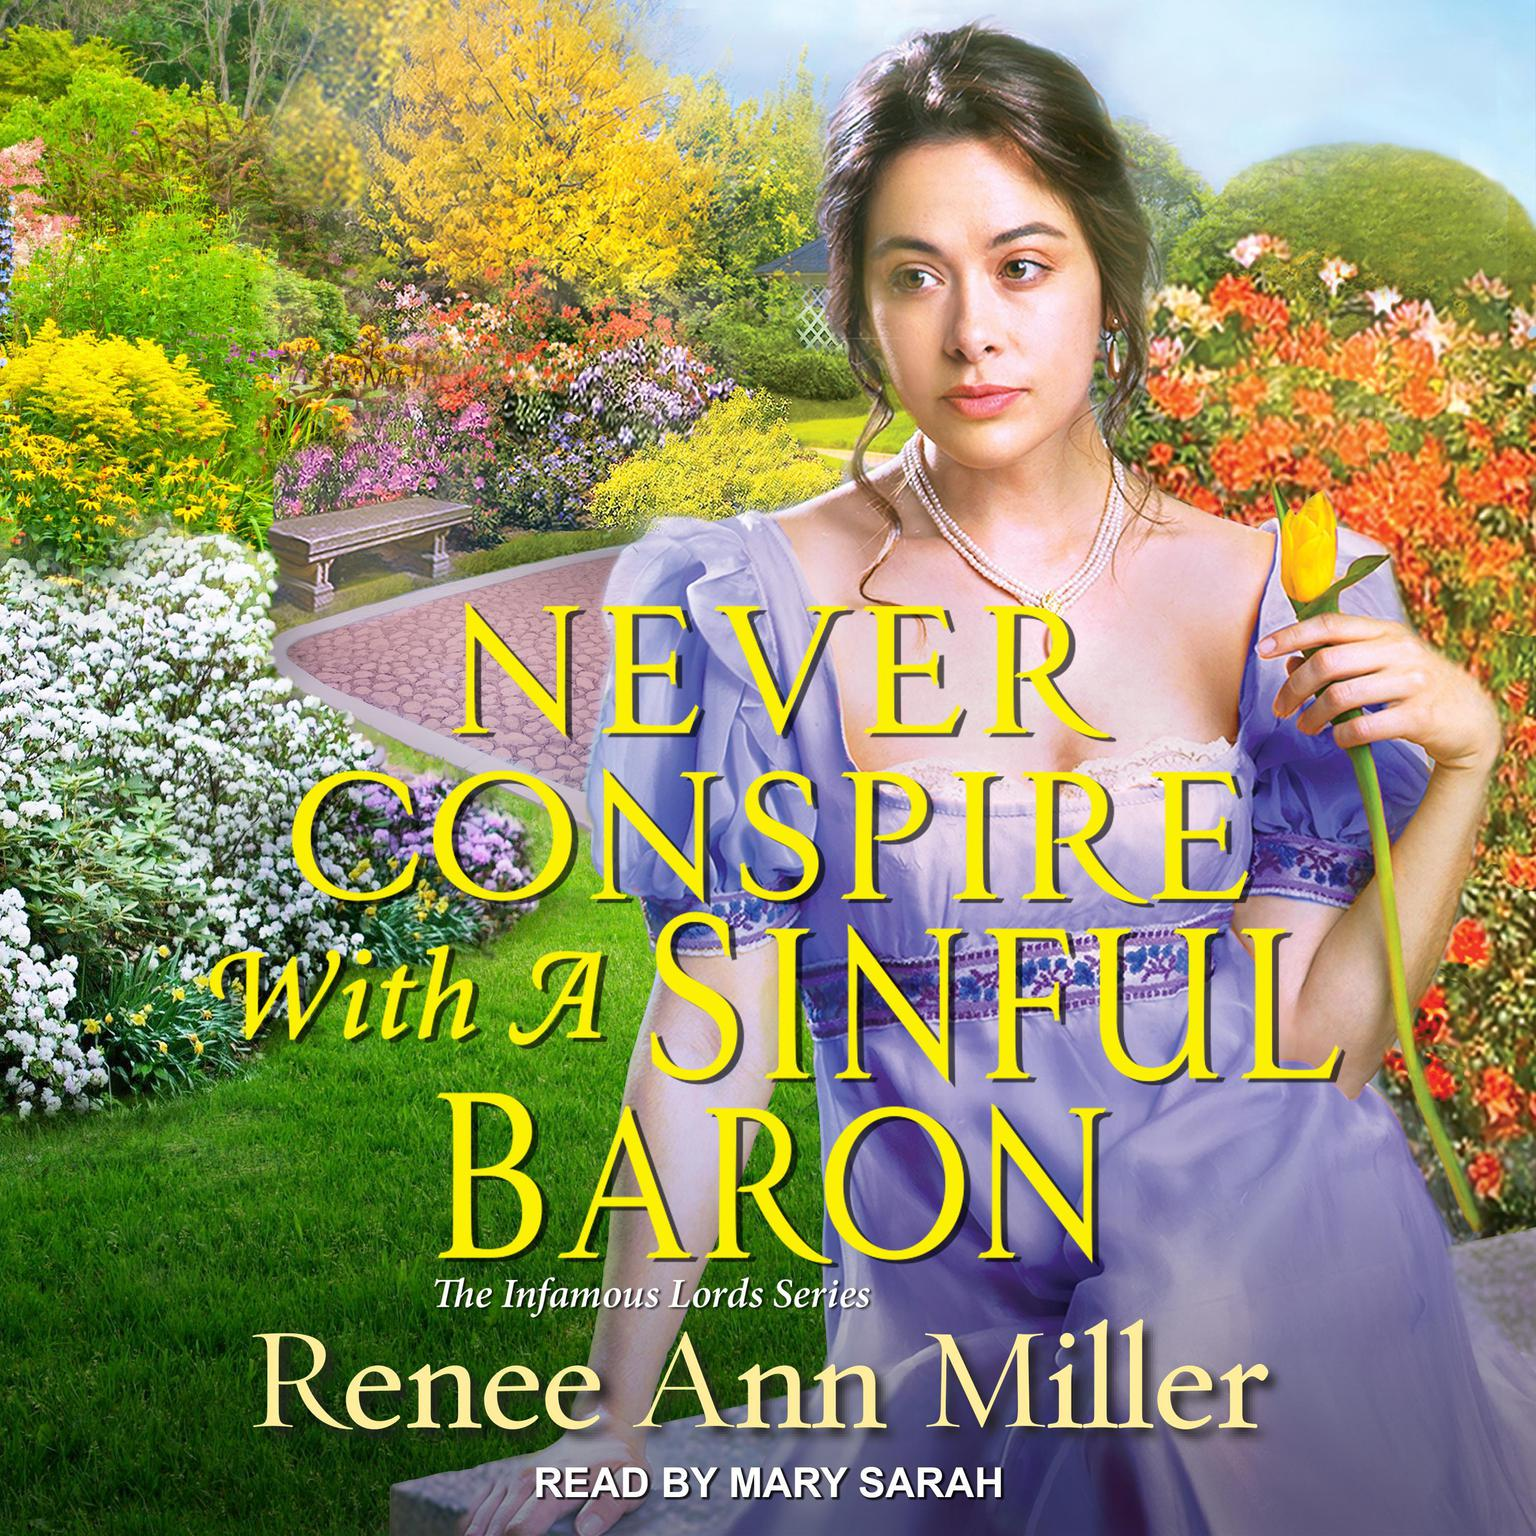 Printable Never Conspire with a Sinful Baron Audiobook Cover Art